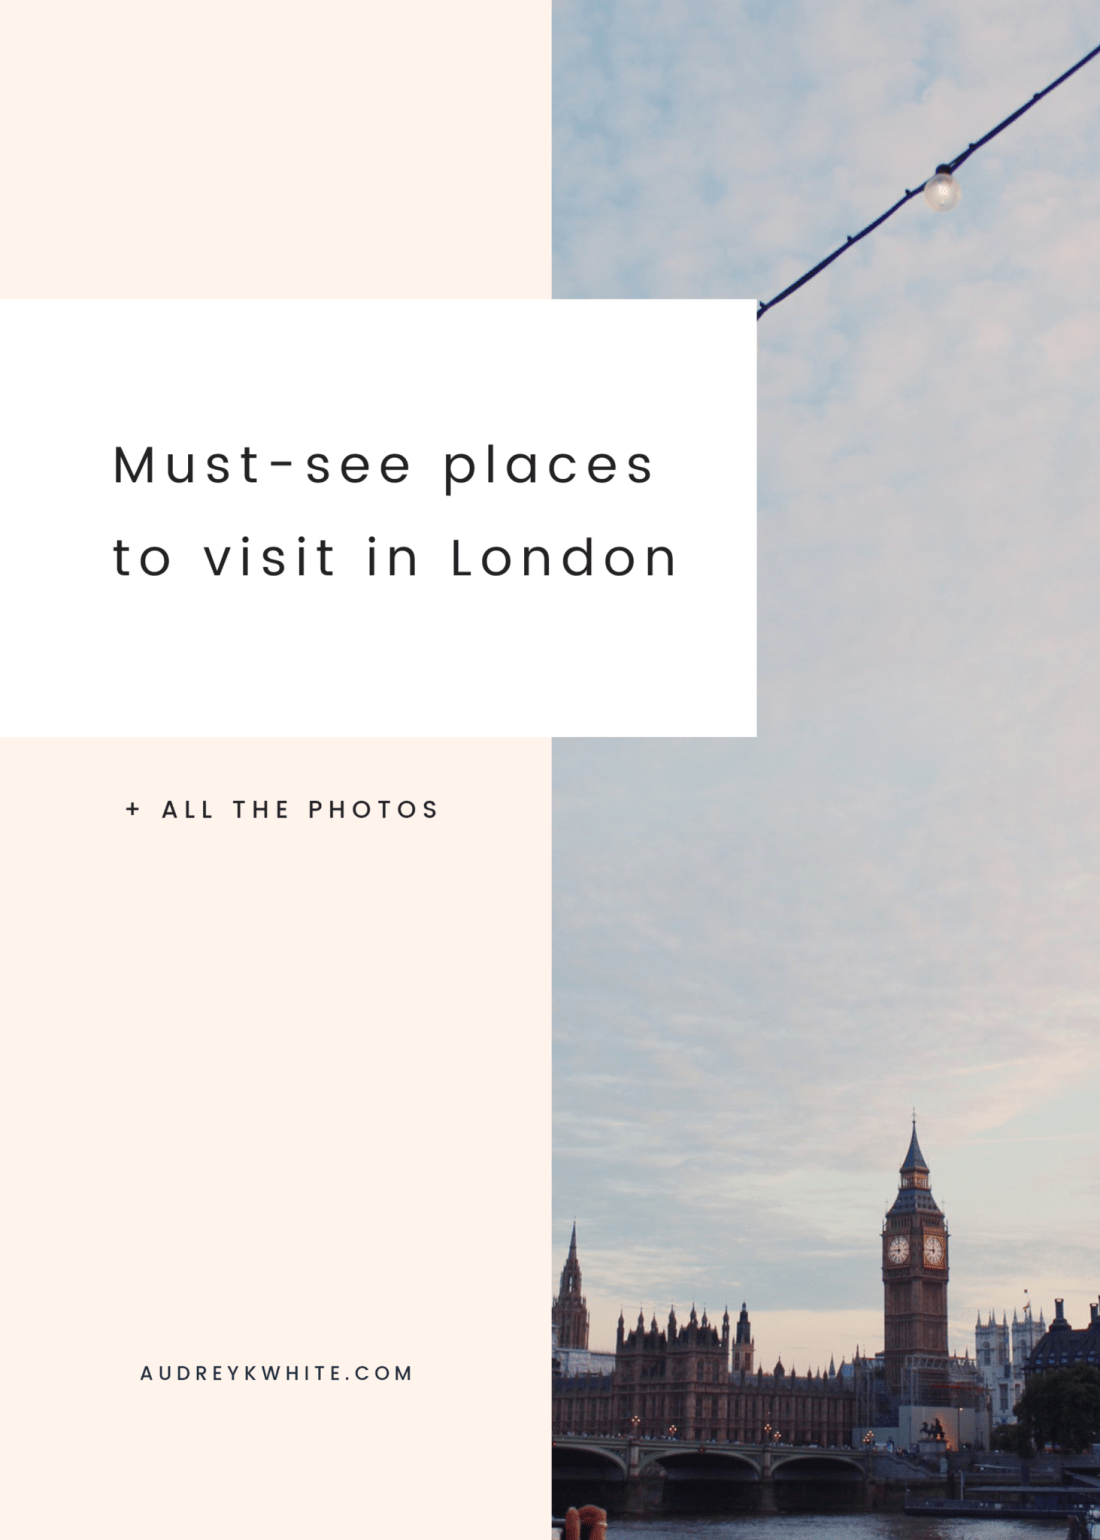 Things to do in London on a budget // must-see places in London #travelblog #london #travelguide #londontrip #londoneye #bigben